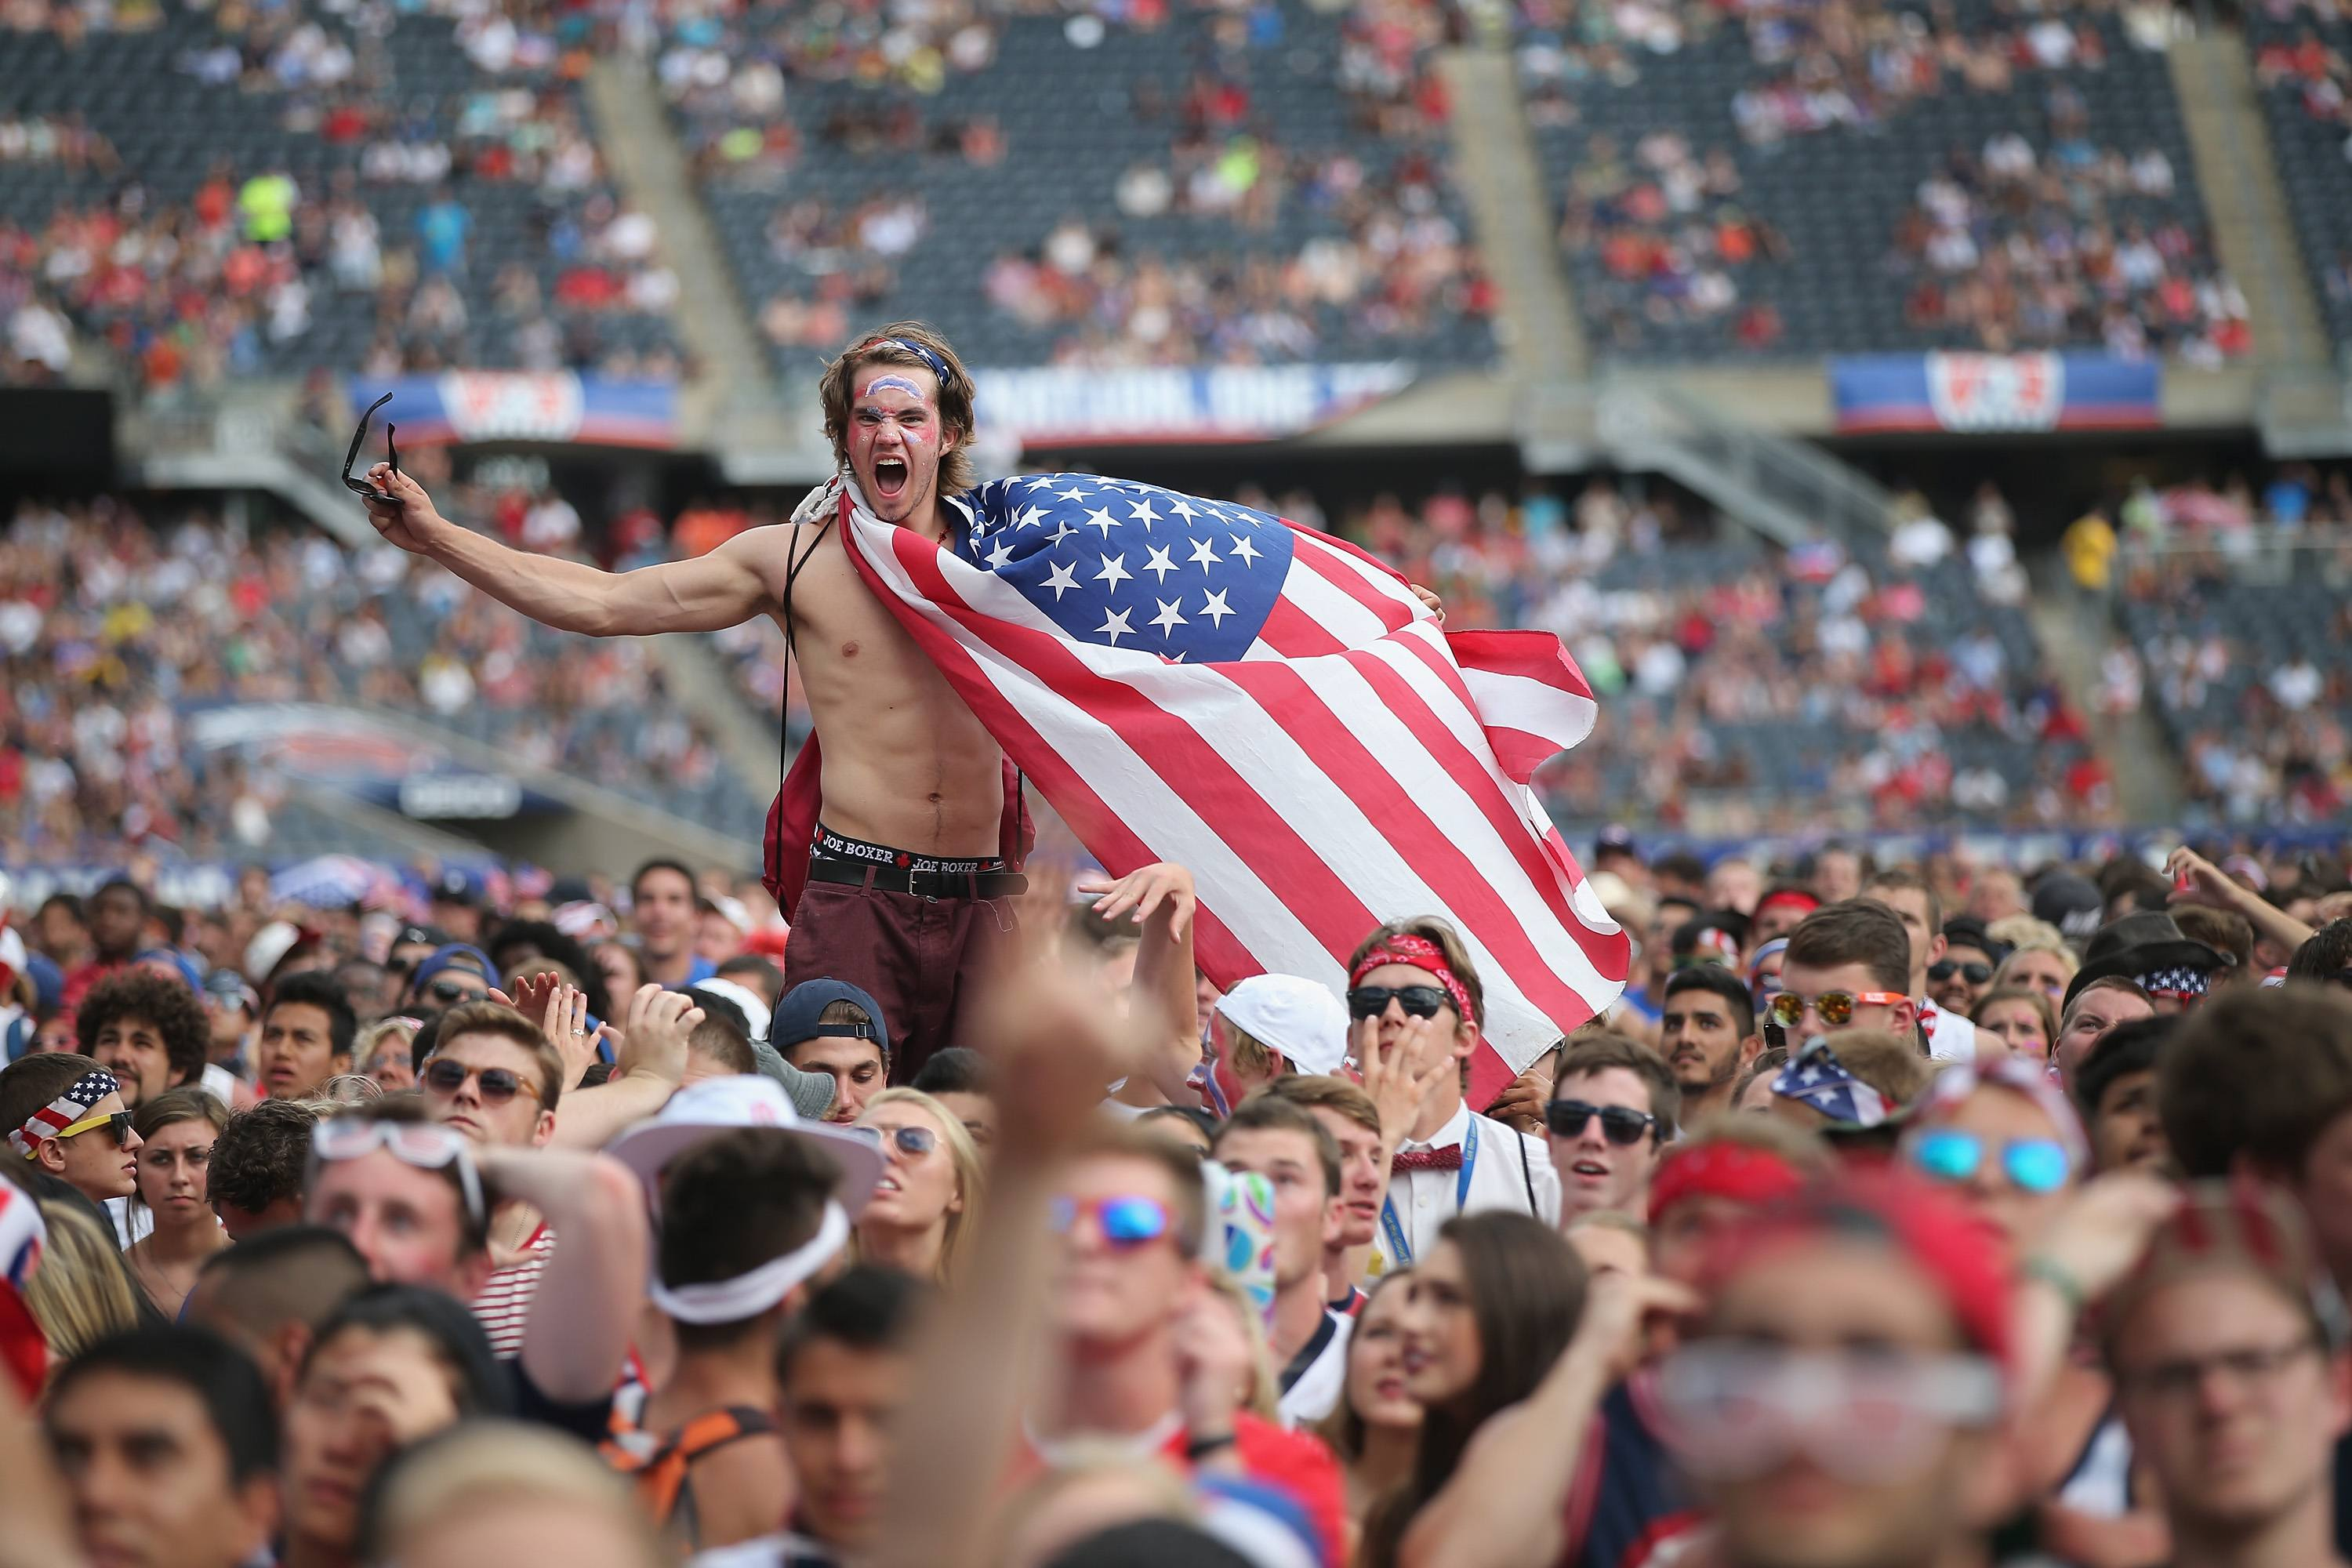 An American soccer fan, draped in a flag